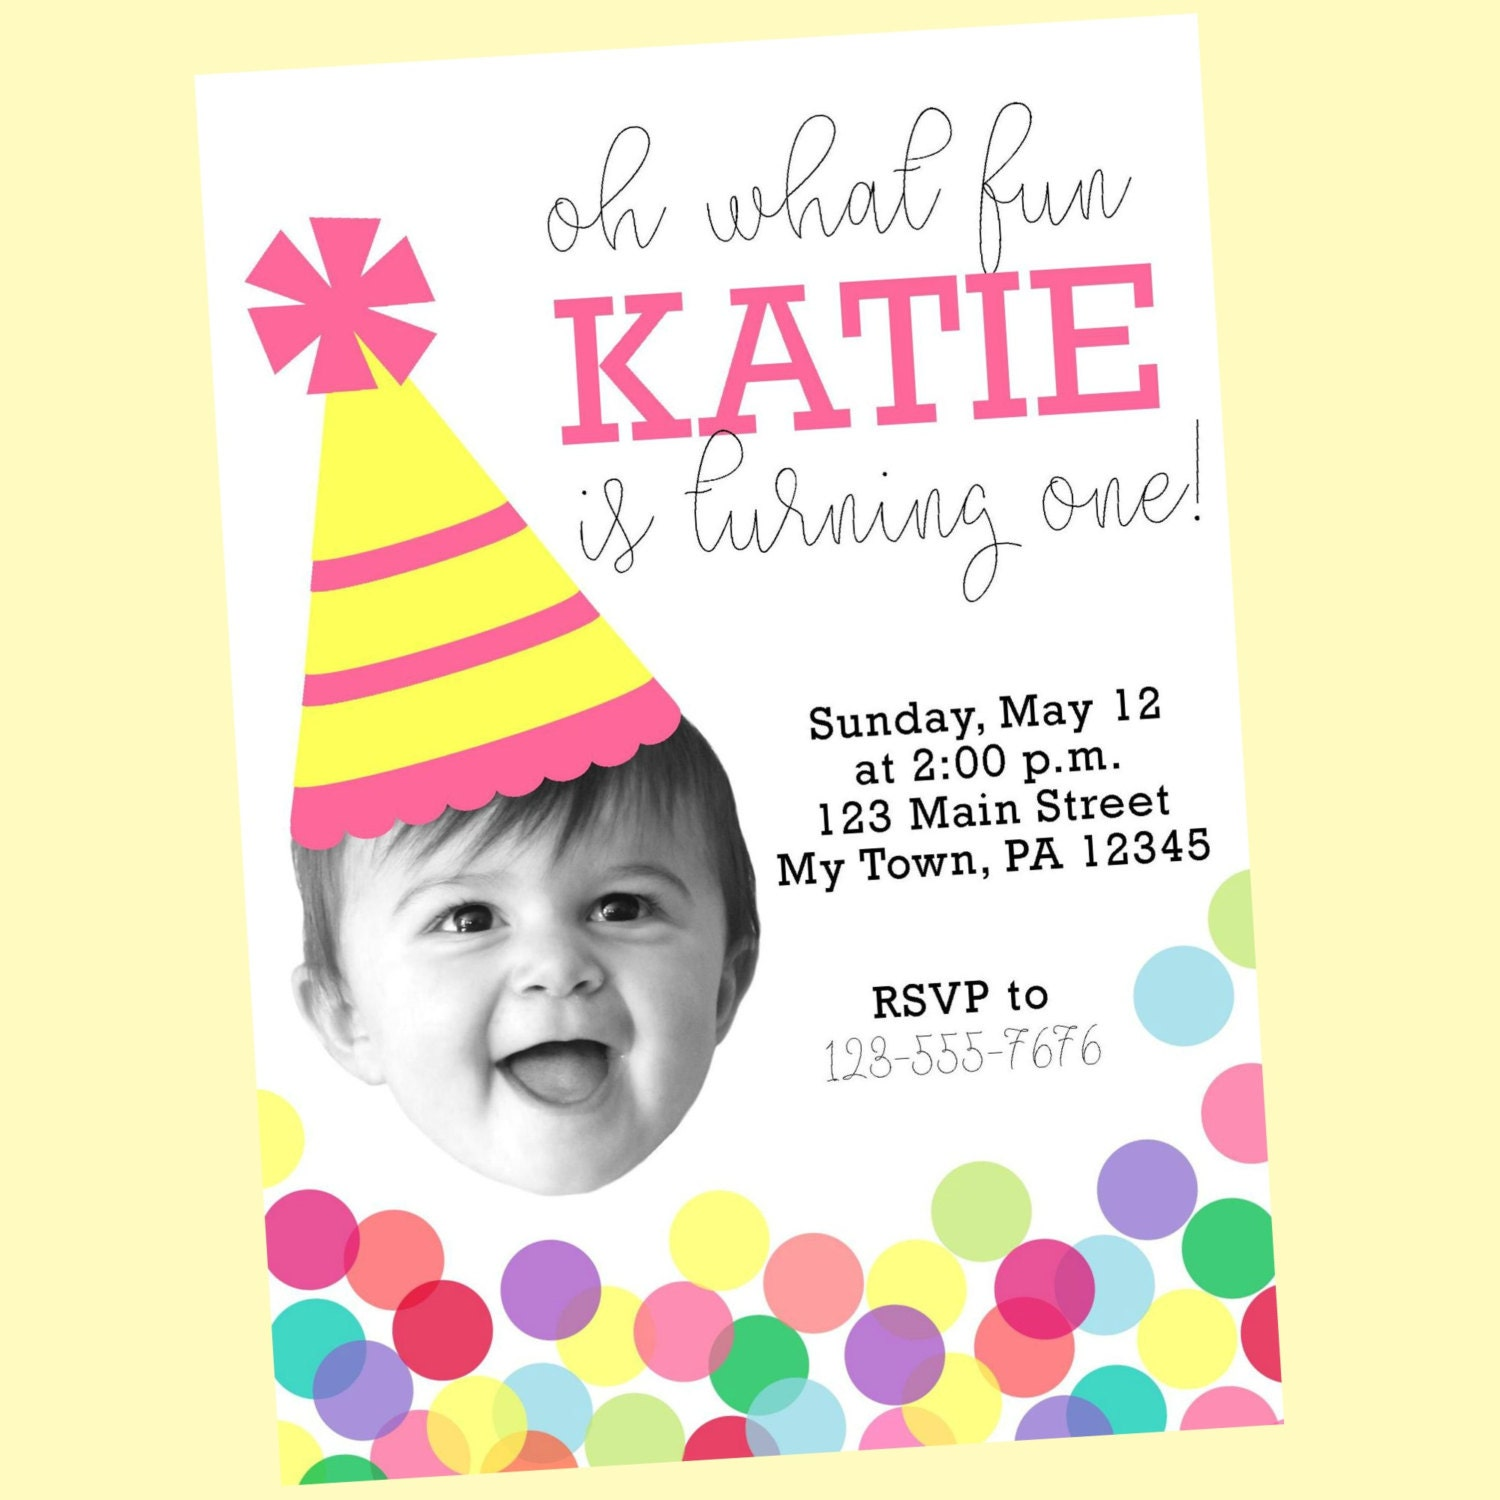 Baby Face Photo First Birthday Party Invitation with Confetti   Etsy